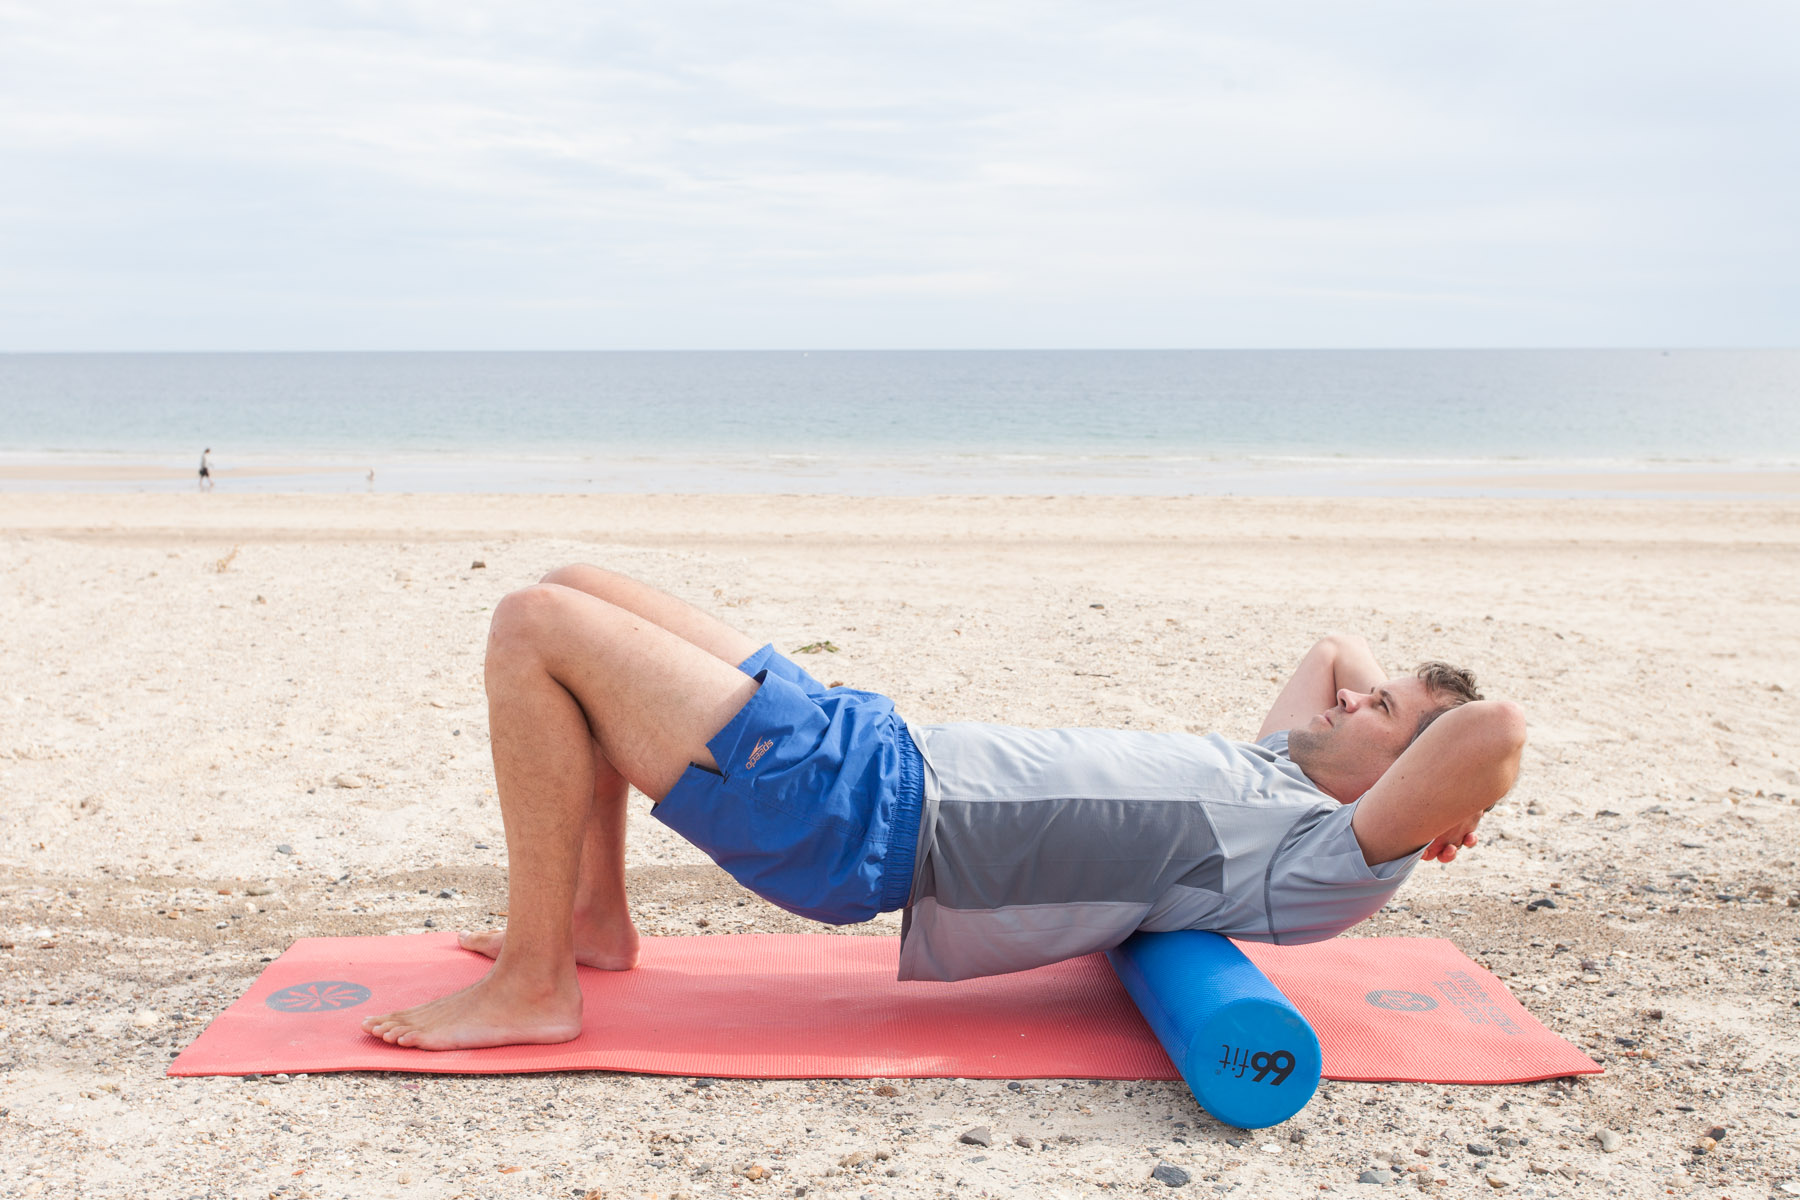 Thoracic Roll   Lift your hips up and keep your head supported with your hands. Roll the upper part of your back from the shoulder blades down to the lower ribs.   Keep breathing and relax your jaw.  You should feel some nice releases in the joints here.  Avoid the neck and the lower back.